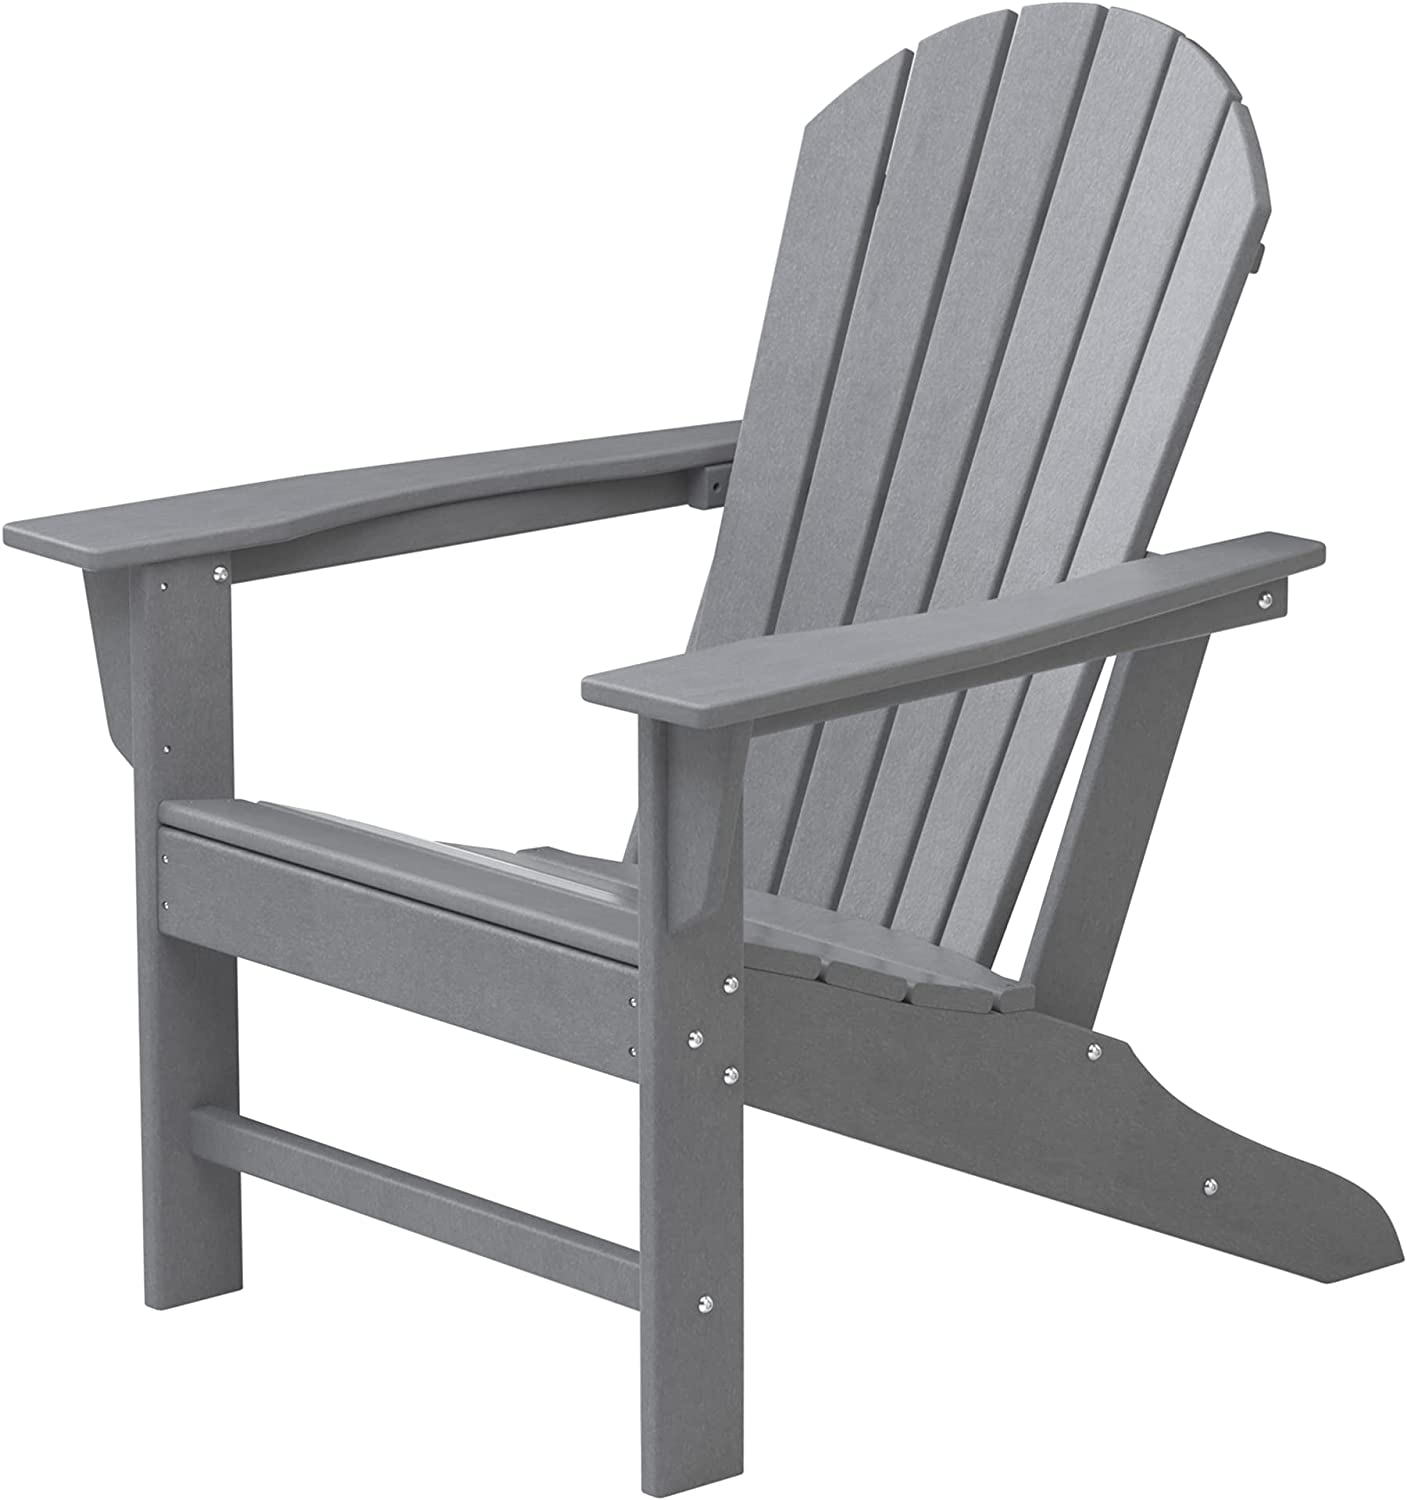 HDPE Adirondack Chair, Patio Outdoor Chairs, Plastic Resin Deck Chair, Painted Weather Resistant, for Deck, Garden, Backyard & Lawn Furniture, Fire Pit, Porch Seating by DAILYLIFE (Slate Gray) : Patio, Lawn & Garden